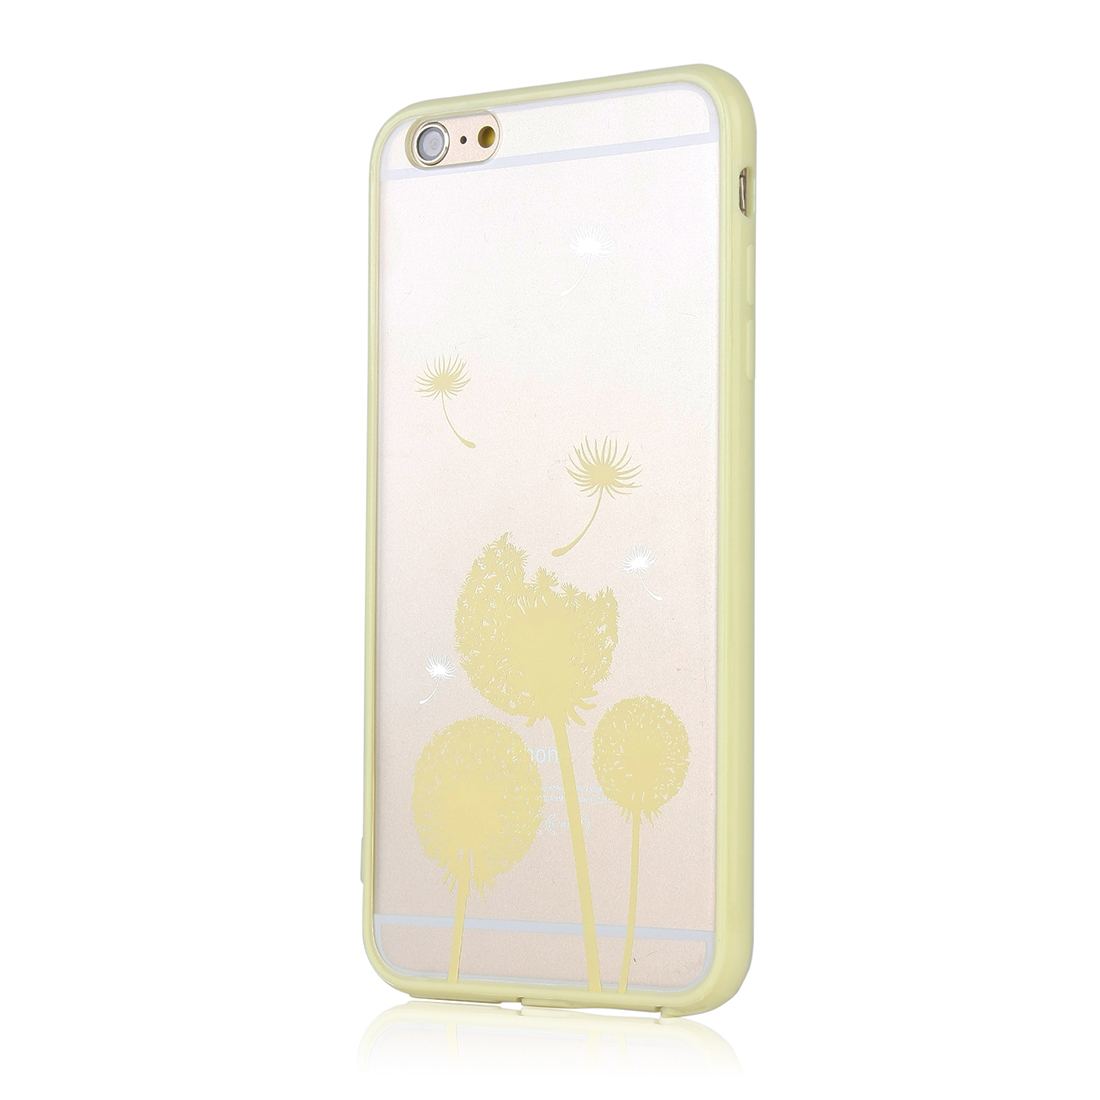 Luxury Transparent Phone Case Cover Yellow for Apple iPhone 6 Plus